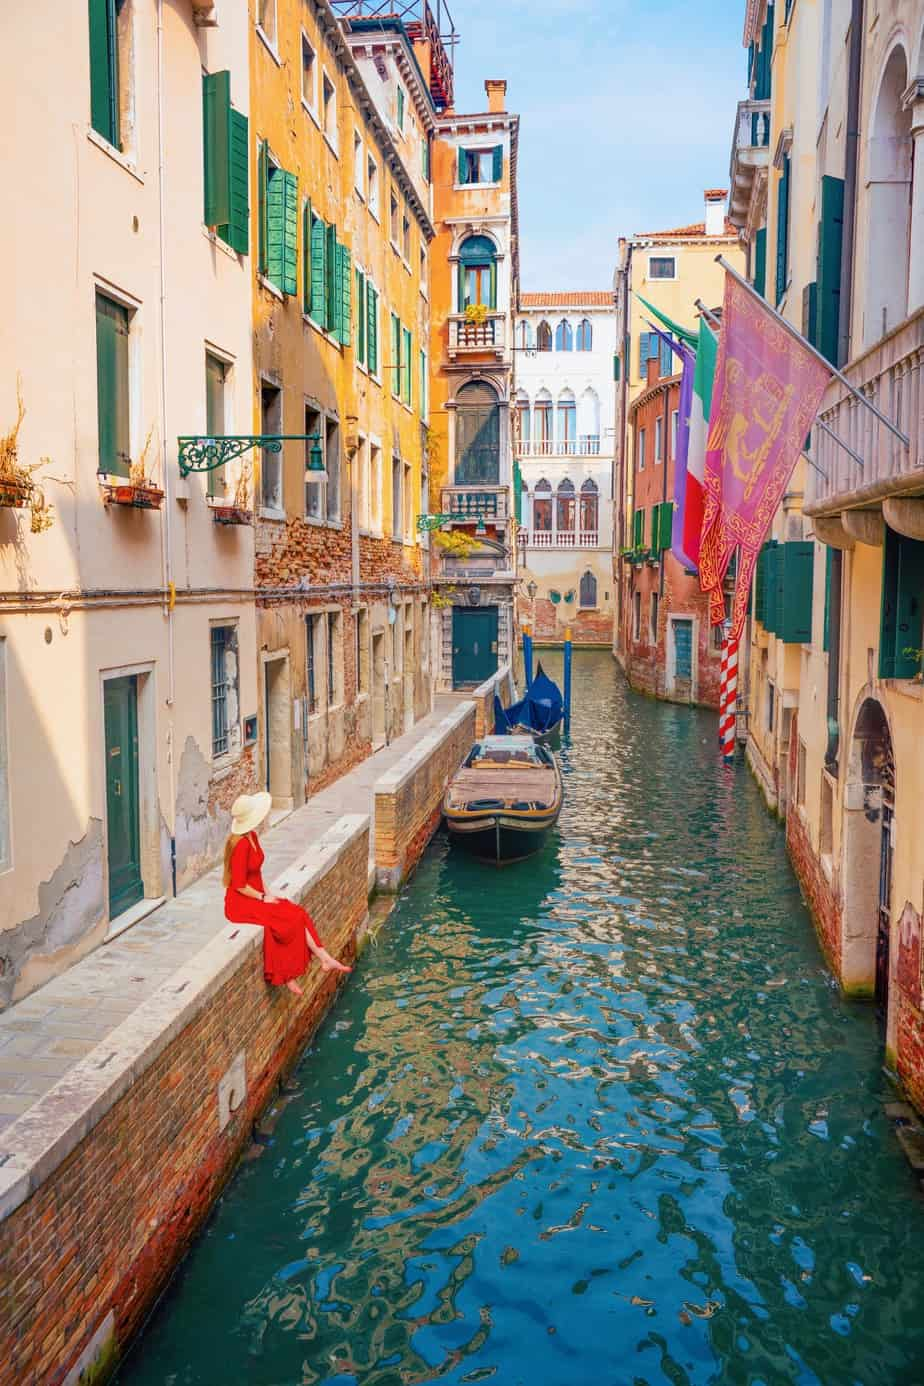 Ponte de La Verona is on of the secret Instagram spots in Venice | hidden gems in Venice italy | unique photo spots in Venice | where to take Instagram photos in Venice | best Venice views